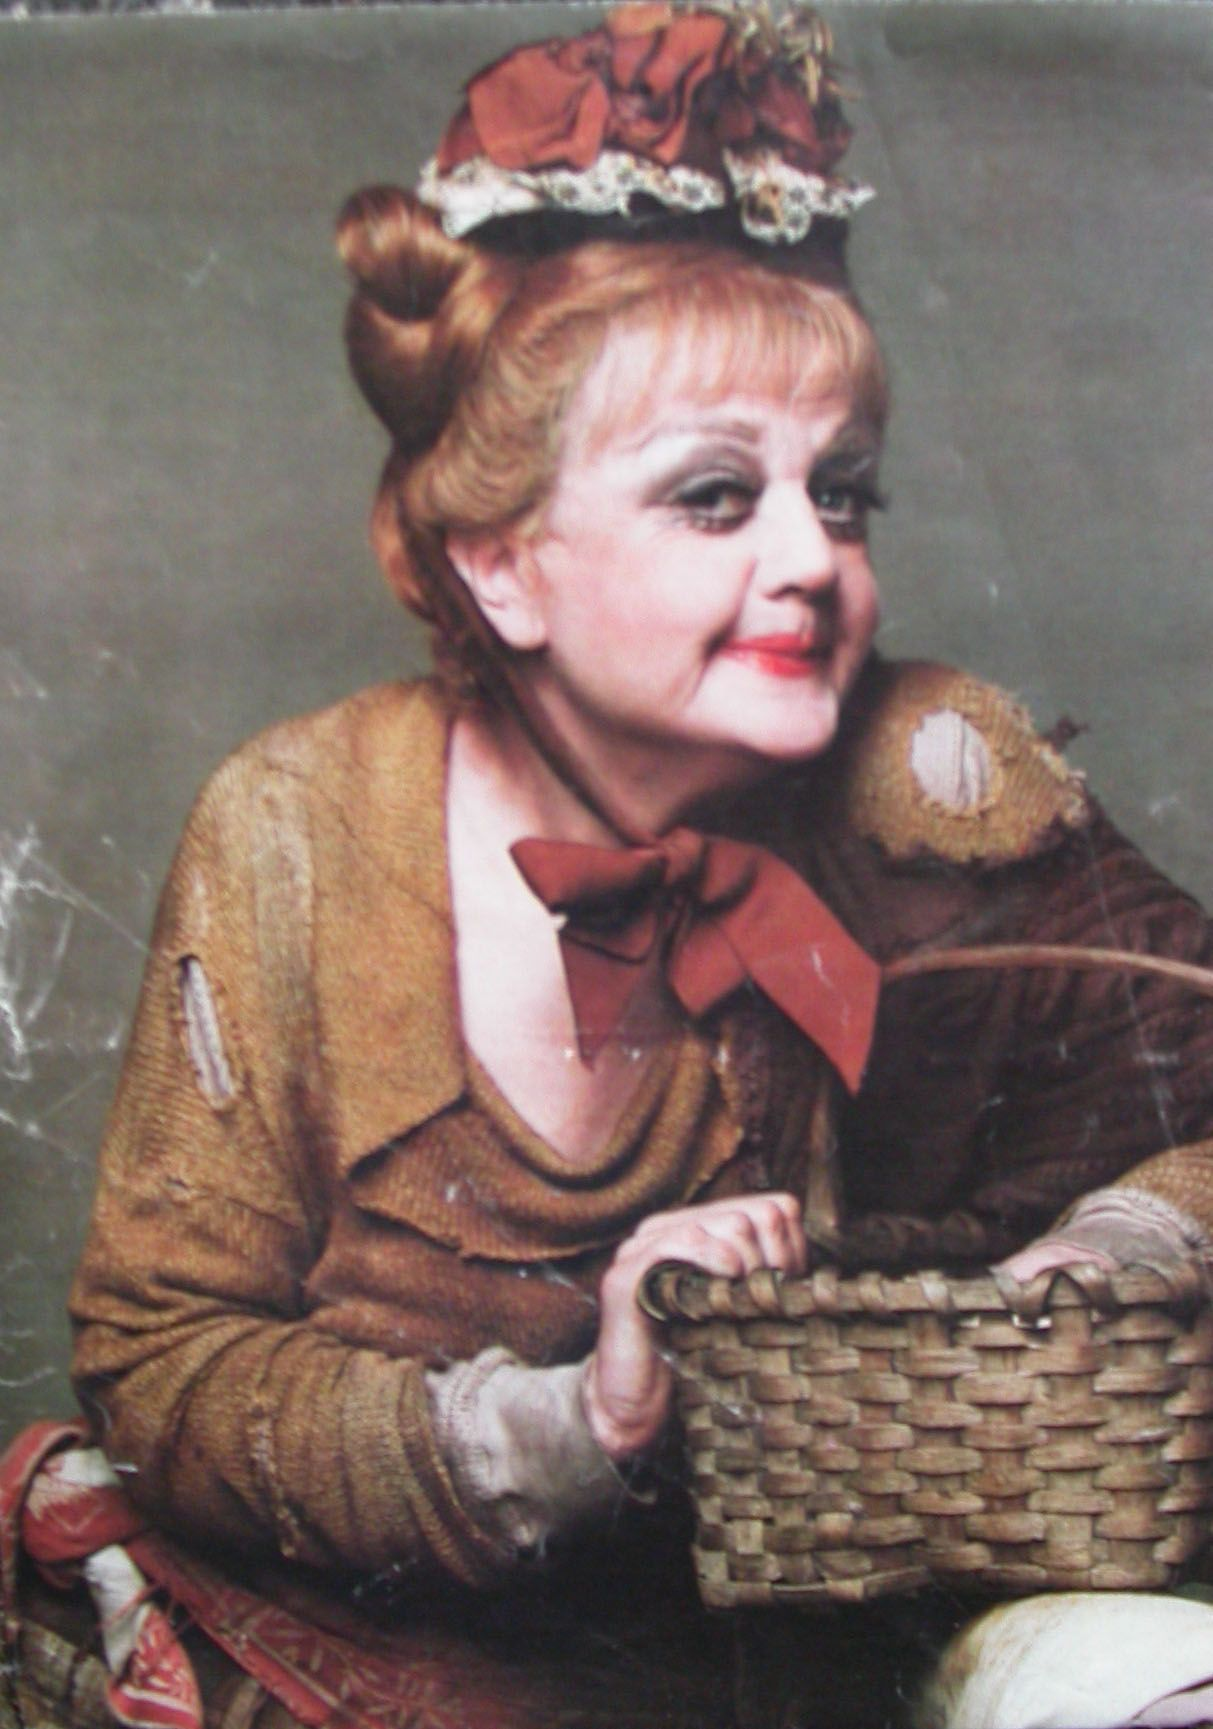 Angela Lansbury As Mrs Lovett In Sweeney Todd Could There Be Anything More Amazing I THINK NOT